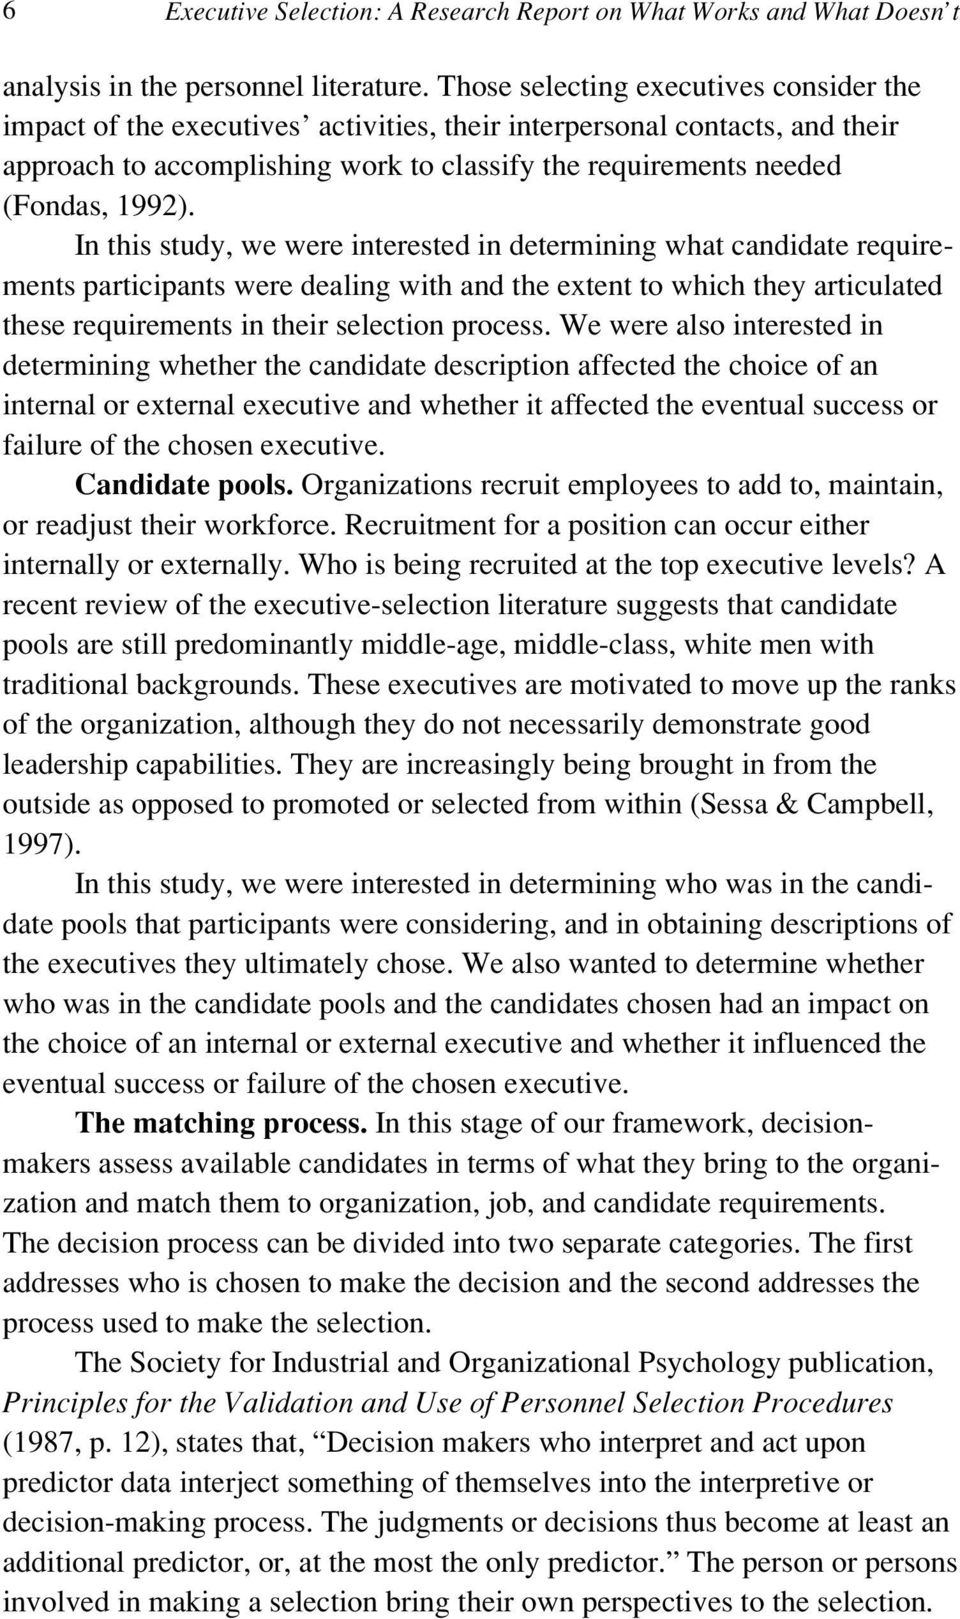 In this study, we were interested in determining what candidate requirements participants were dealing with and the extent to which they articulated these requirements in their selection process.